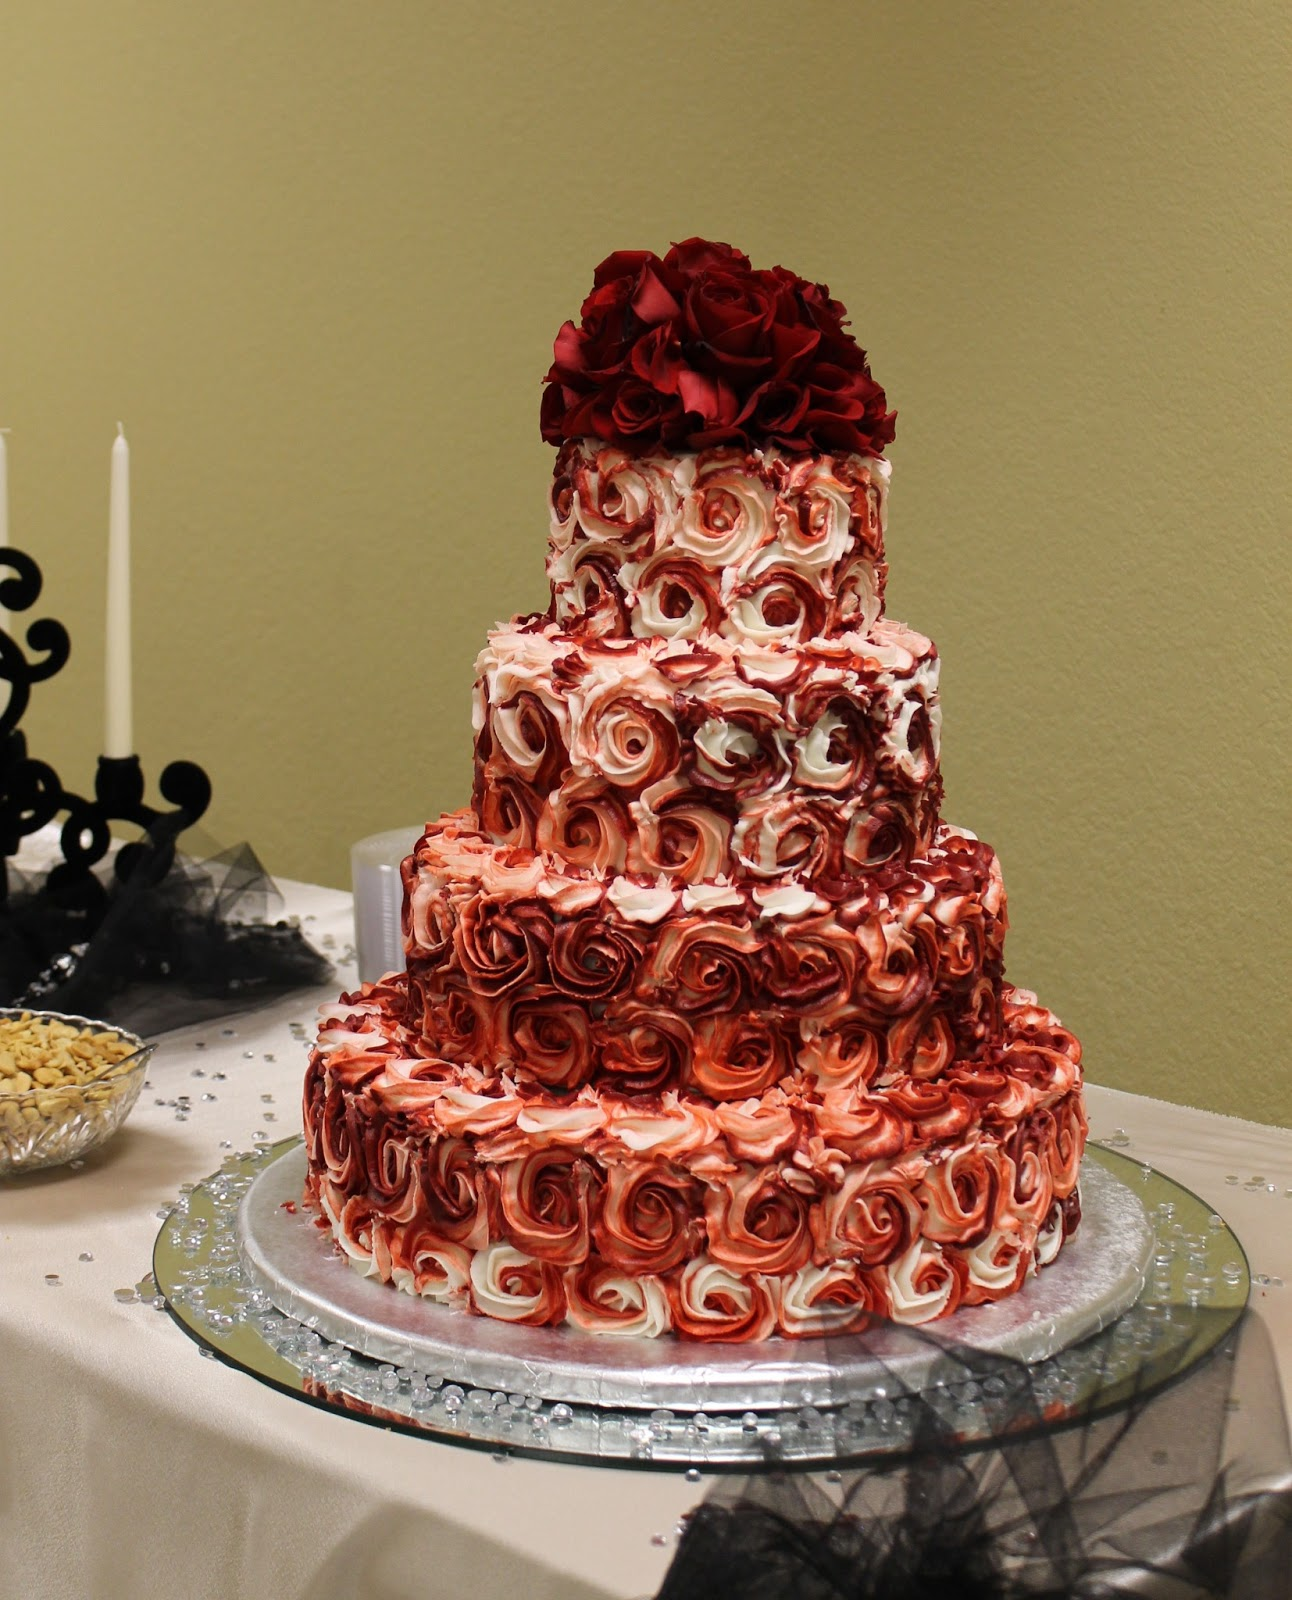 The Simple Cake Red Rose Wedding Cake